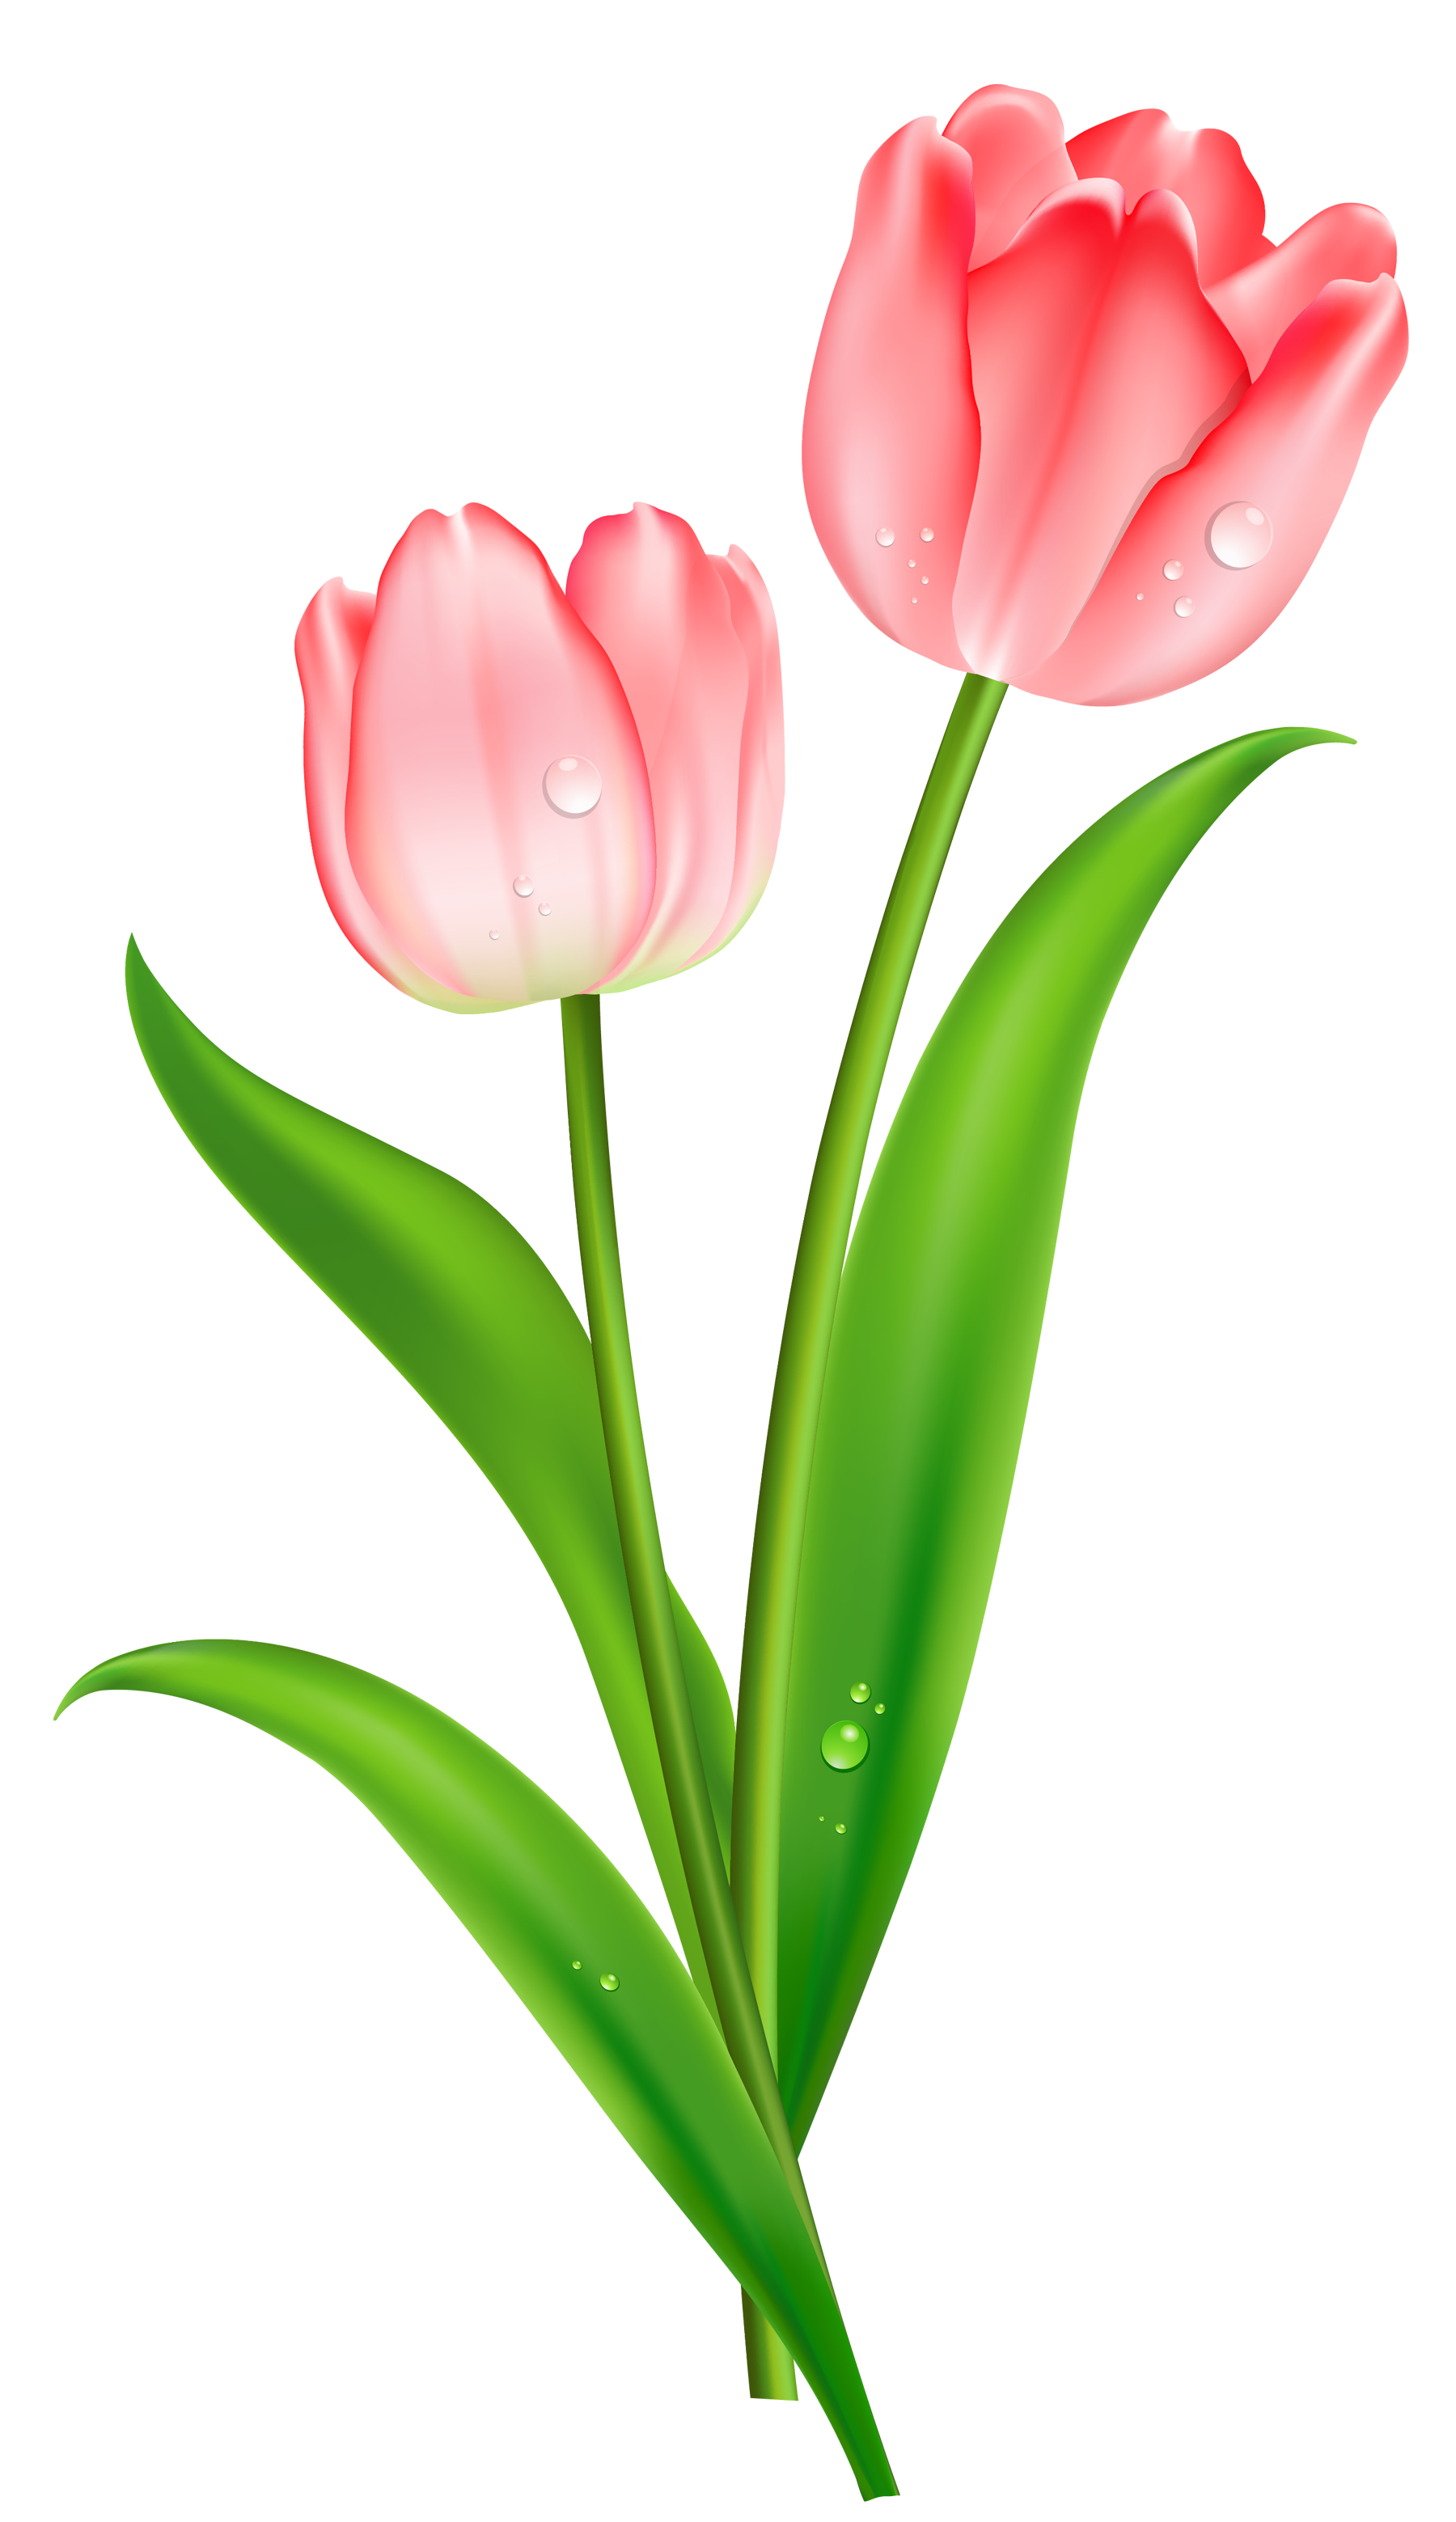 tulip clipart png images free from pngimagesfree com rh pngimagesfree com tulip clipart free black and white Tulip Clip Art